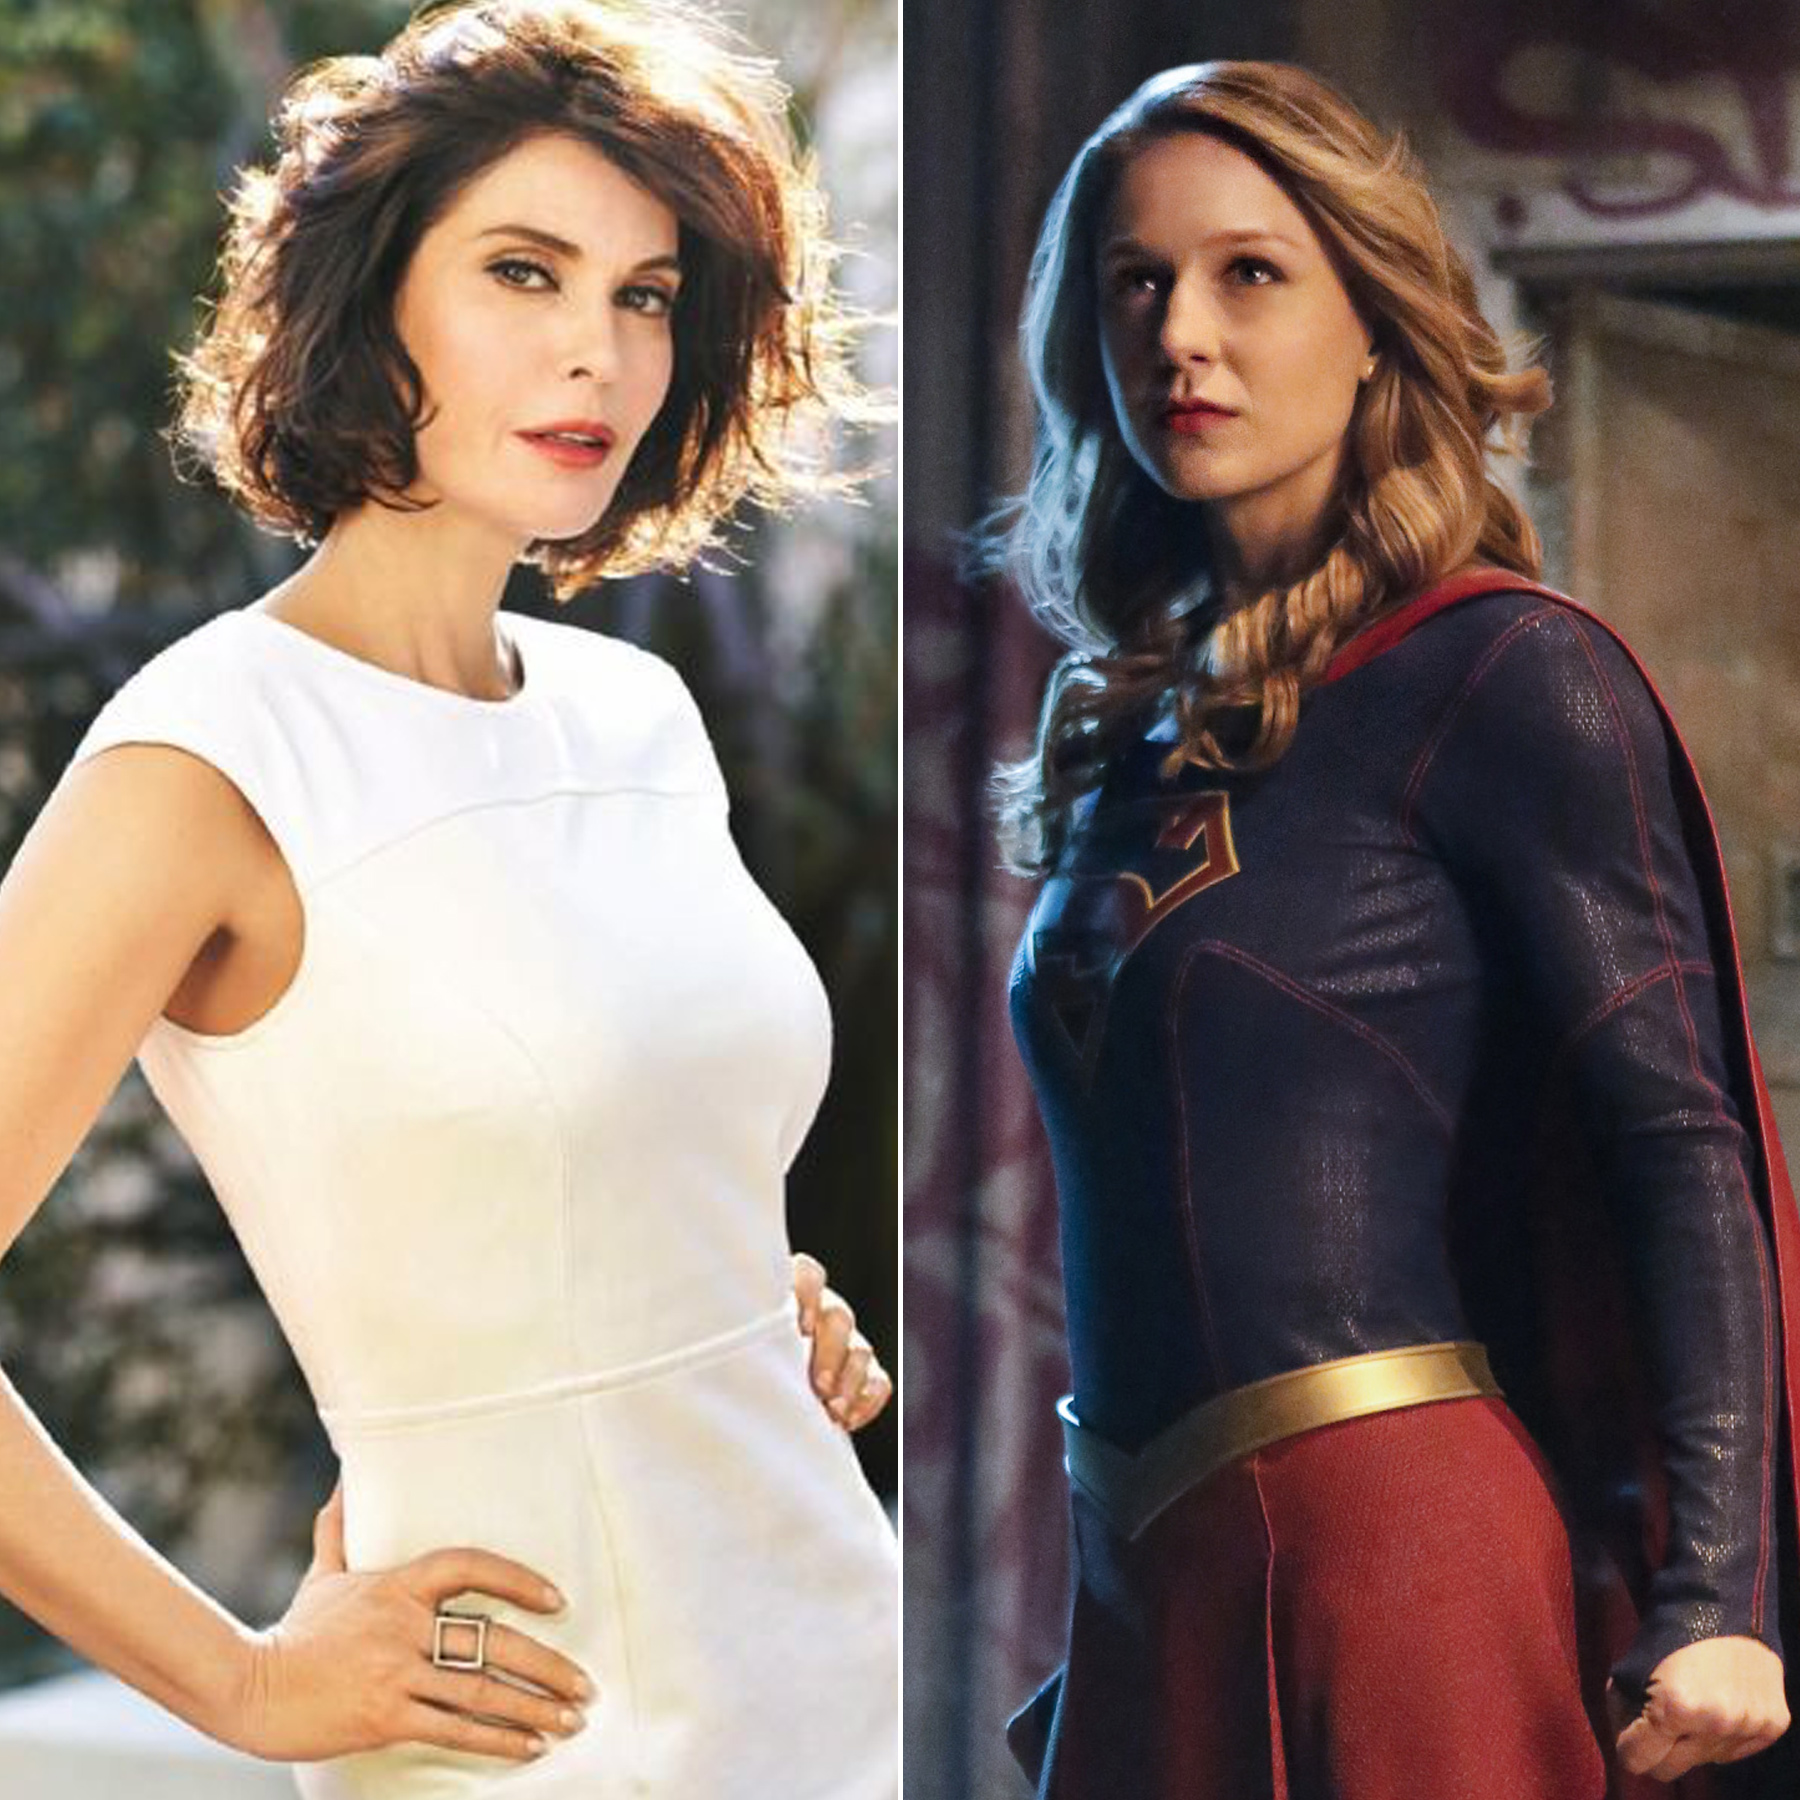 Teri Hatcher joins Supergirl